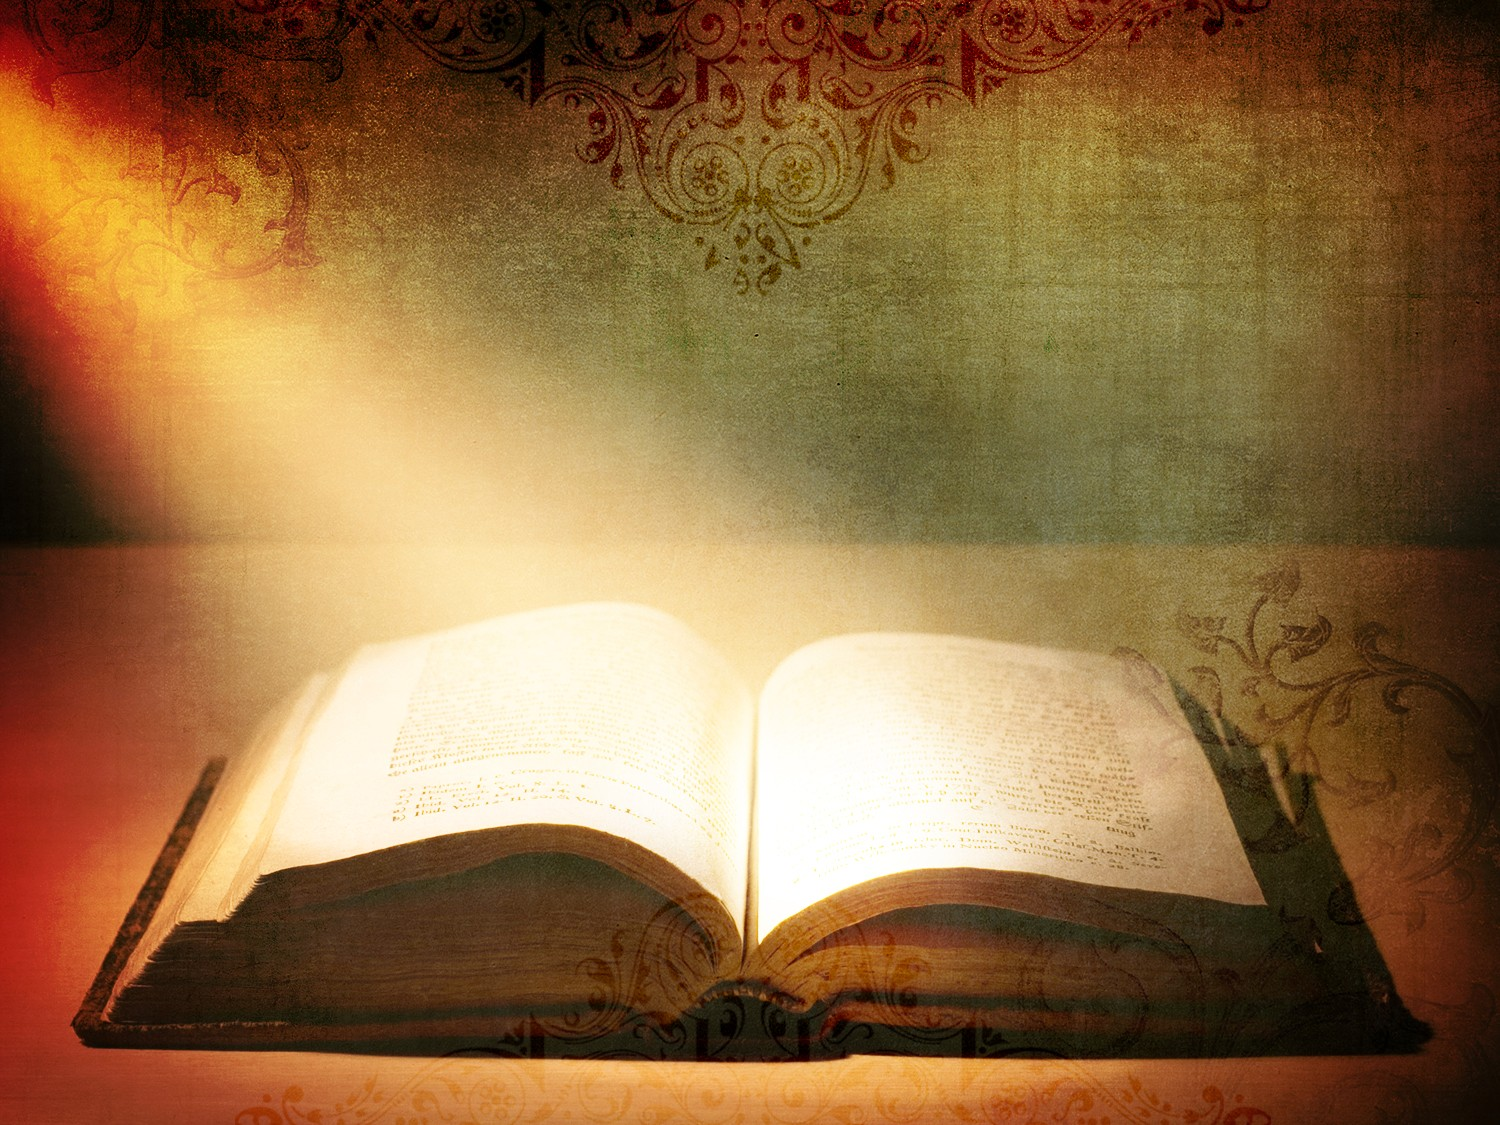 Religious Backgrounds for Powerpoint Presentations   HD Wallpapers 1500x1125